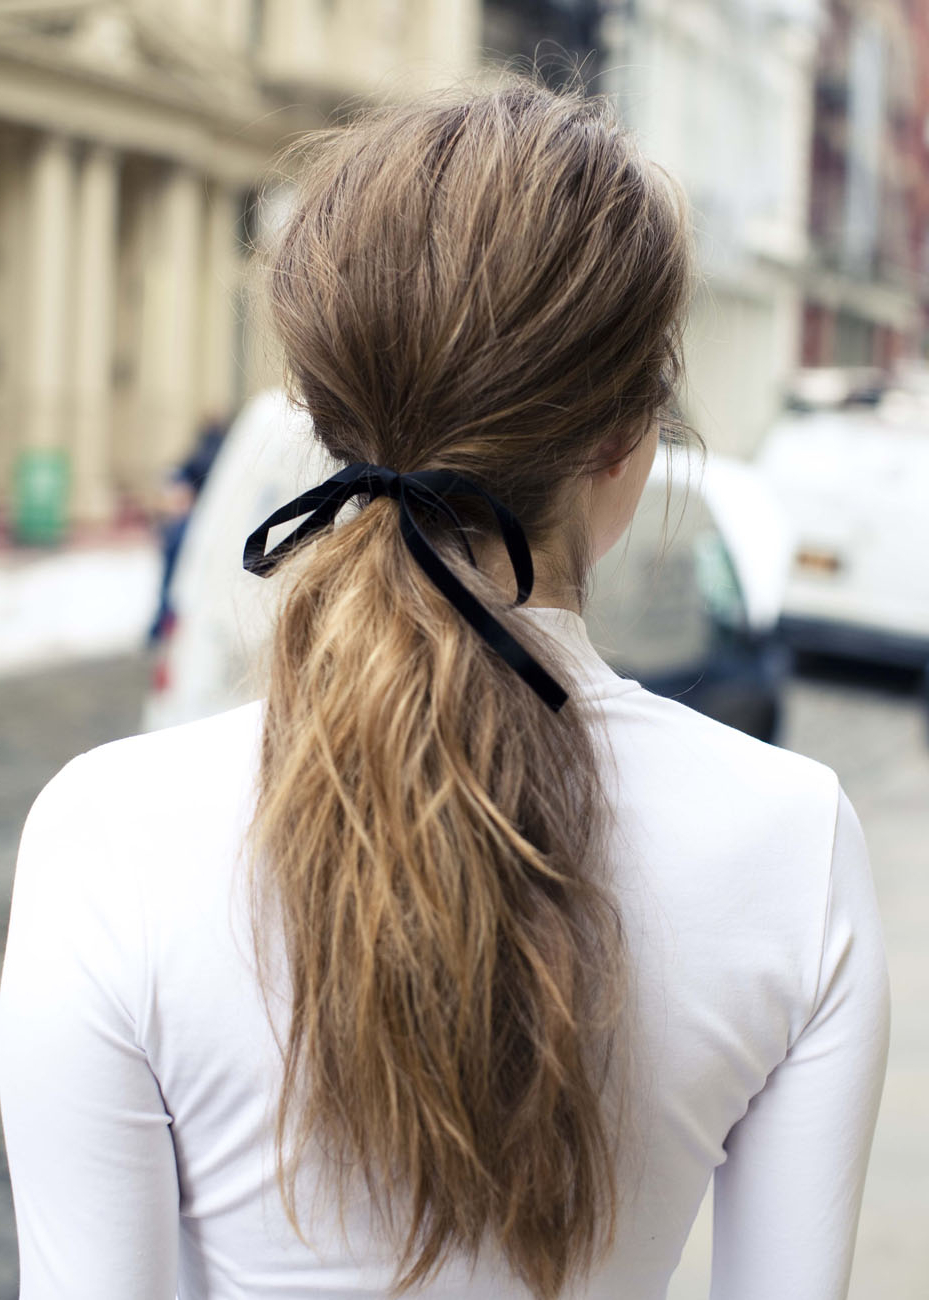 Widely Used Black Bow Ponytail Hairstyles Inside How To Make Even The Simplest Ponytail Pretty – Coveteur (Gallery 4 of 20)